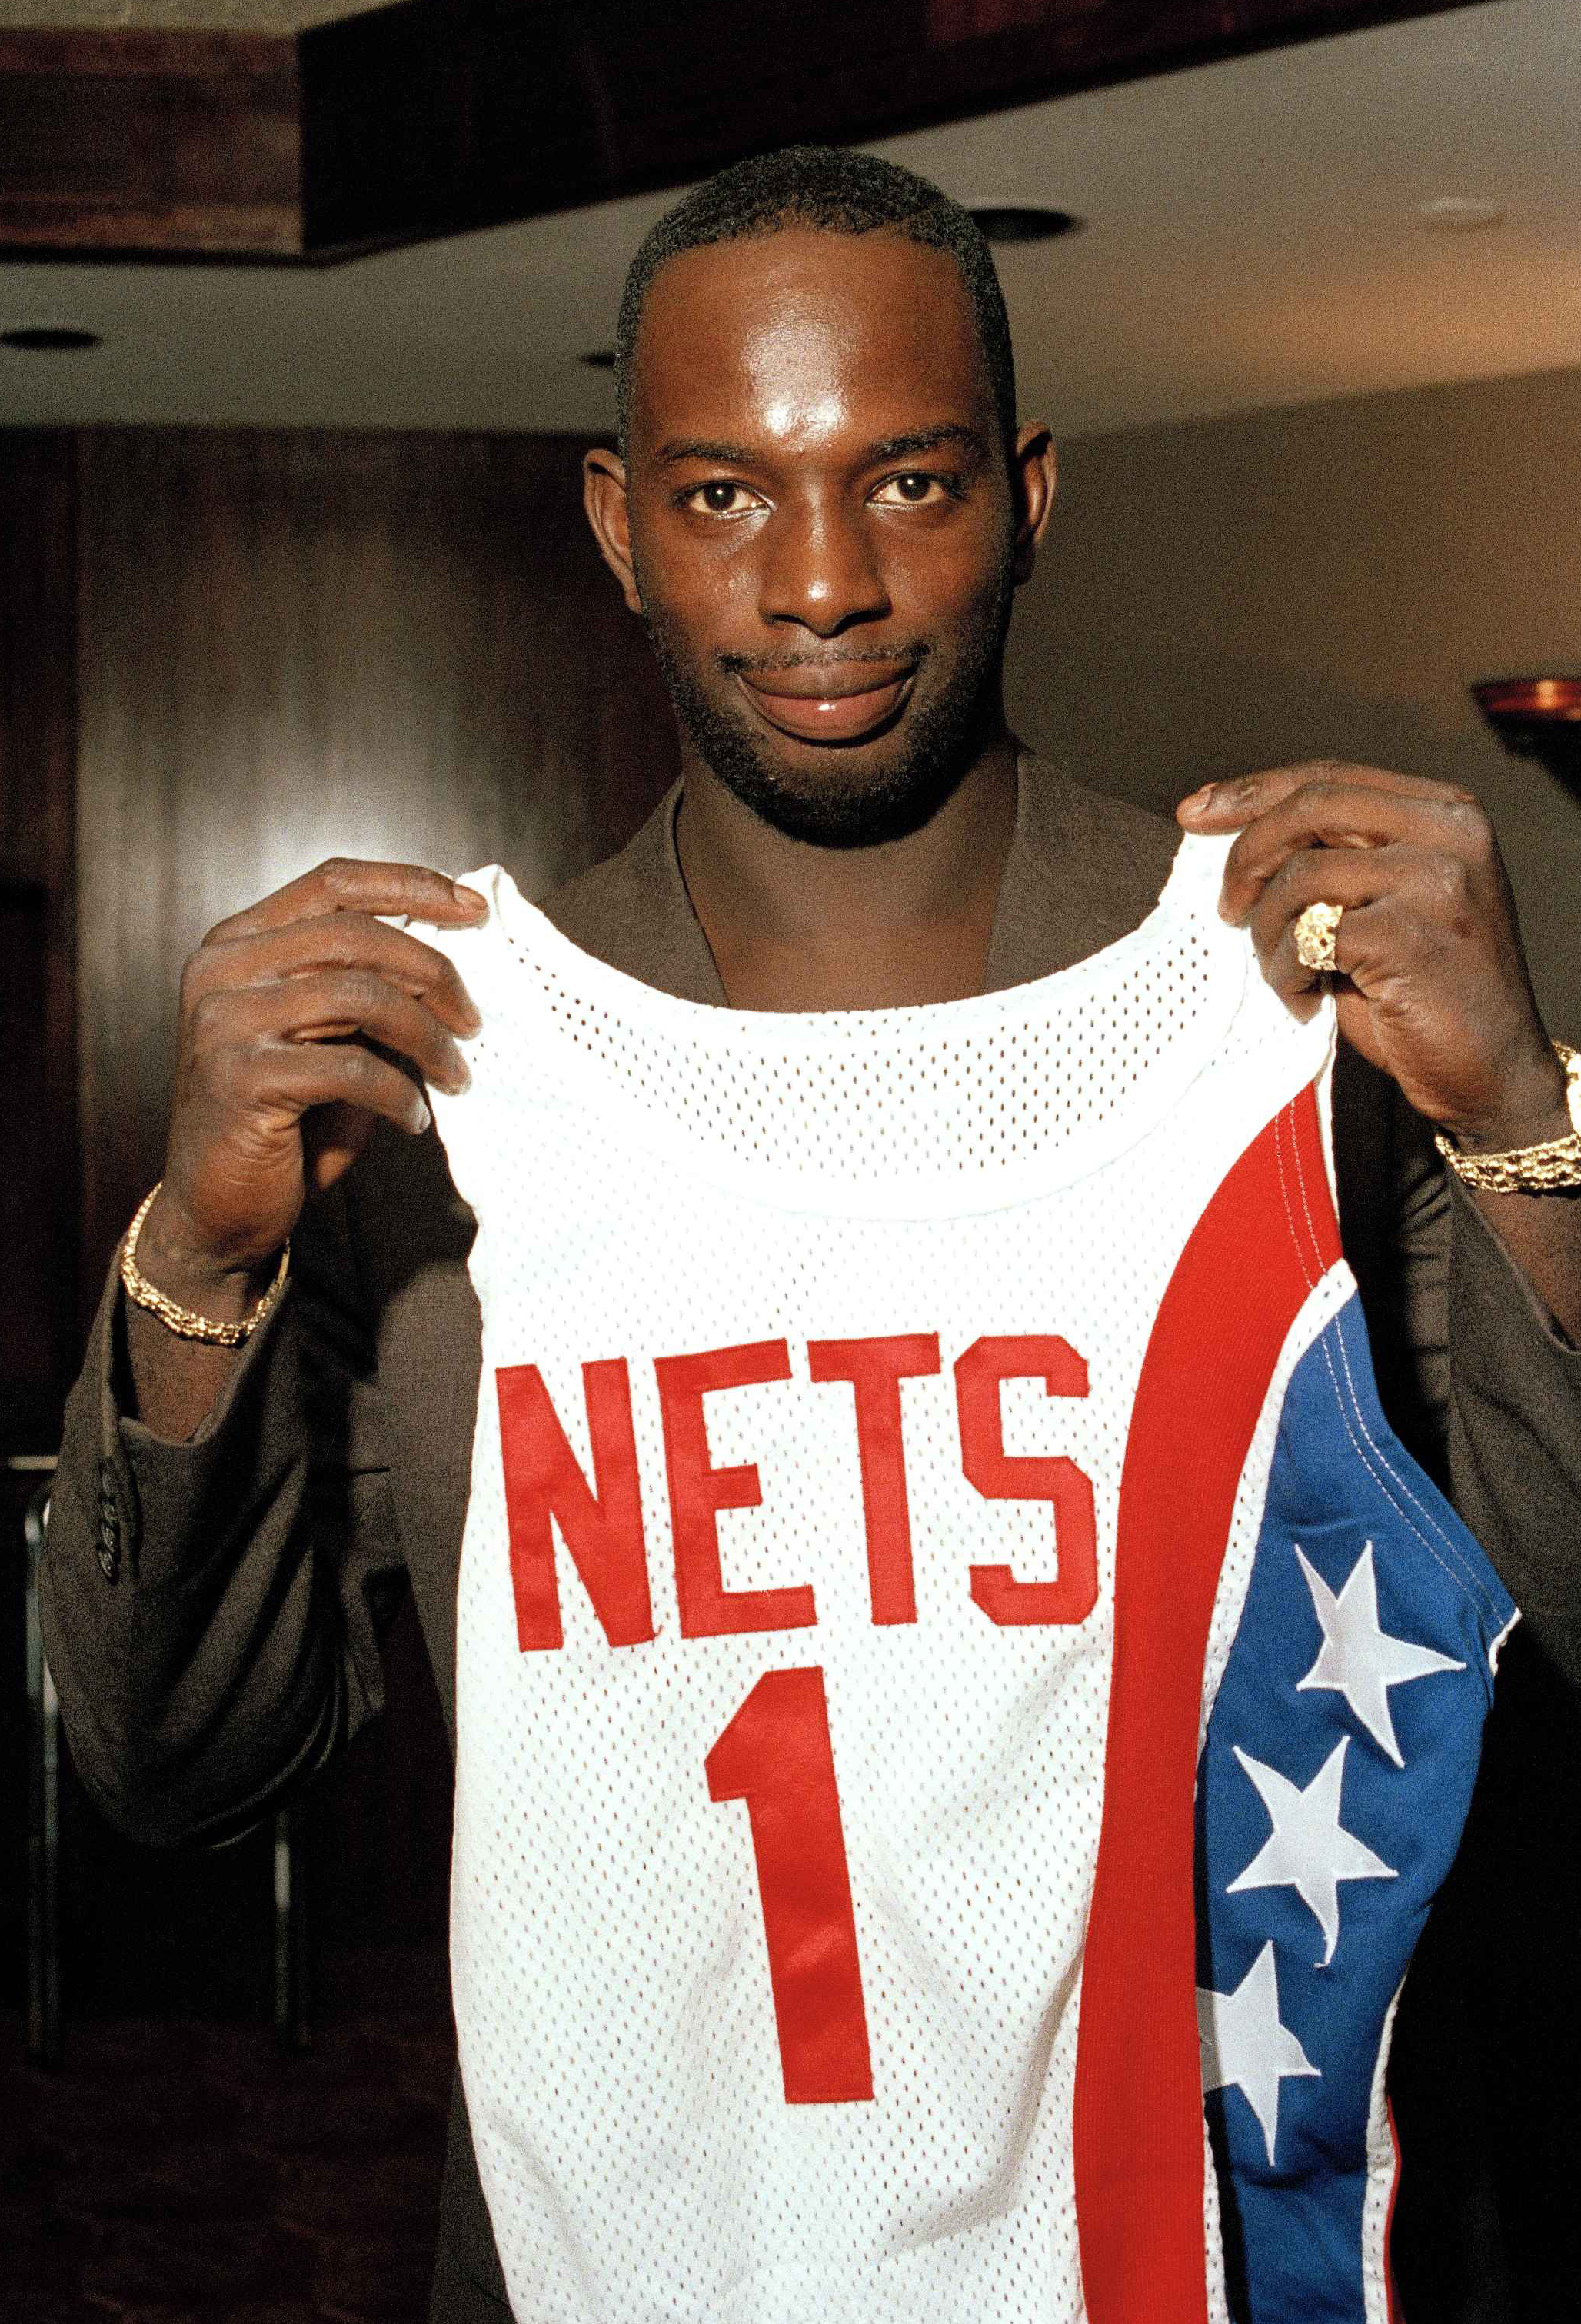 """FILE - In this Aug. 20, 1986 file photo, Dwayne """"Pearl"""" Washington, the first draft pick by the New Jersey Nets, holds up his new uniform during a press luncheon at the Meadowlands Arena in East Rutherford, N.J.  Washington, who went from New York City pl"""